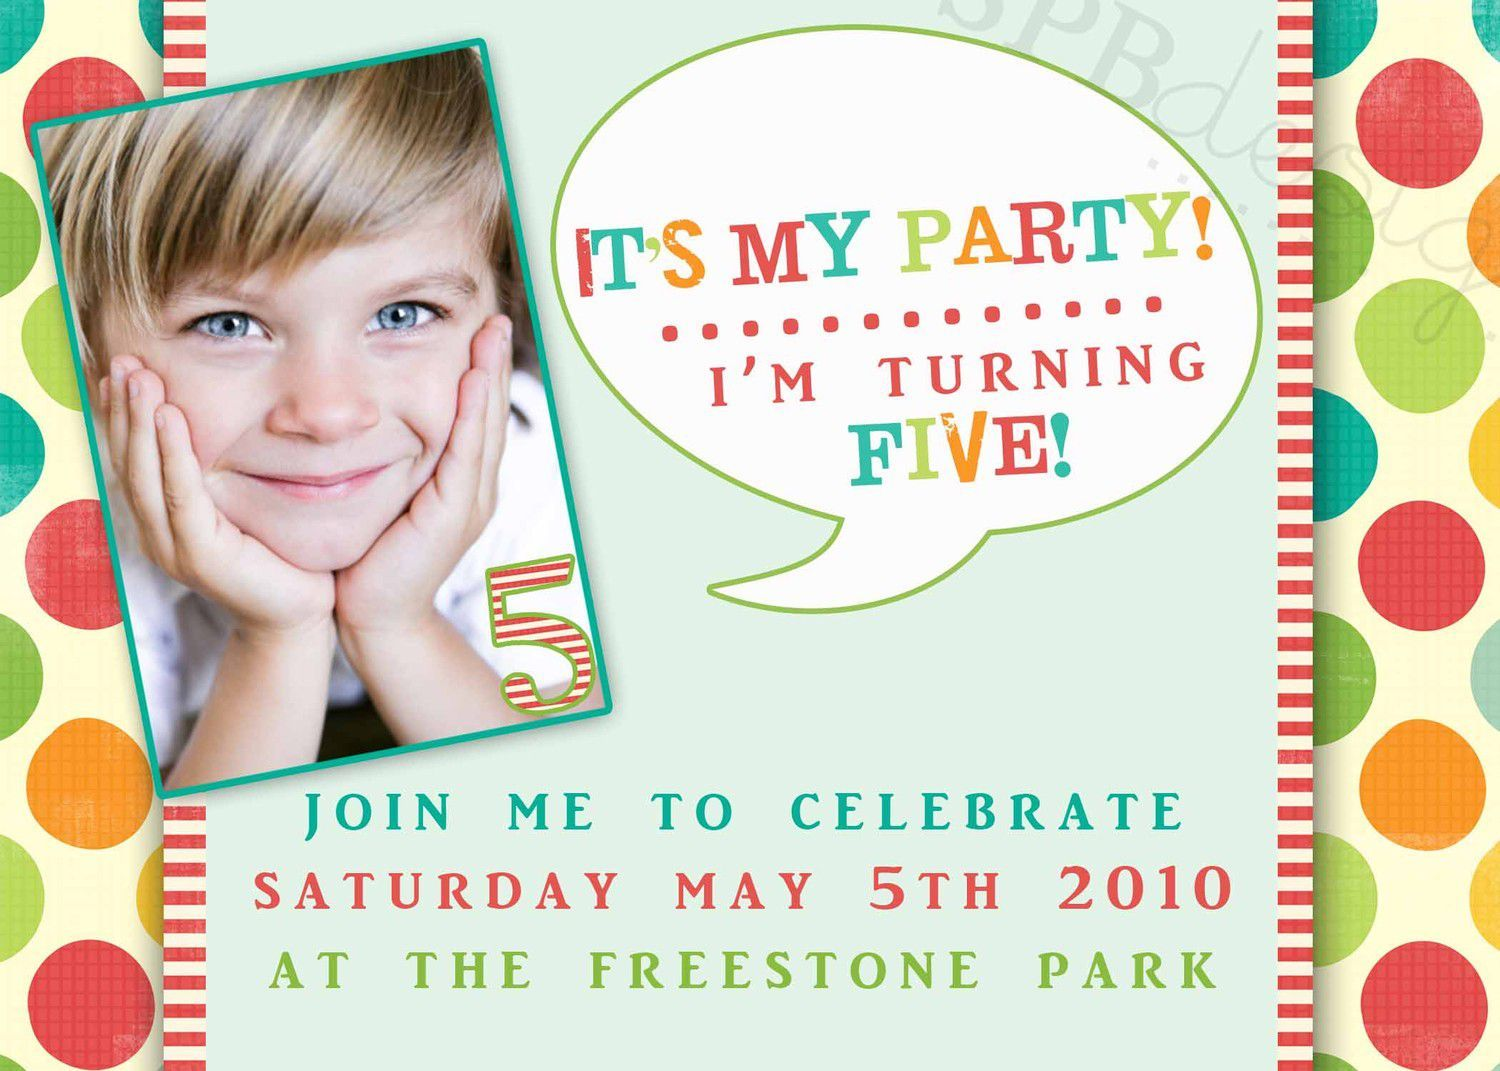 Birthday Invitation Wording For Year Old Boy Birthday - Birthday invitation templates for 1 year old